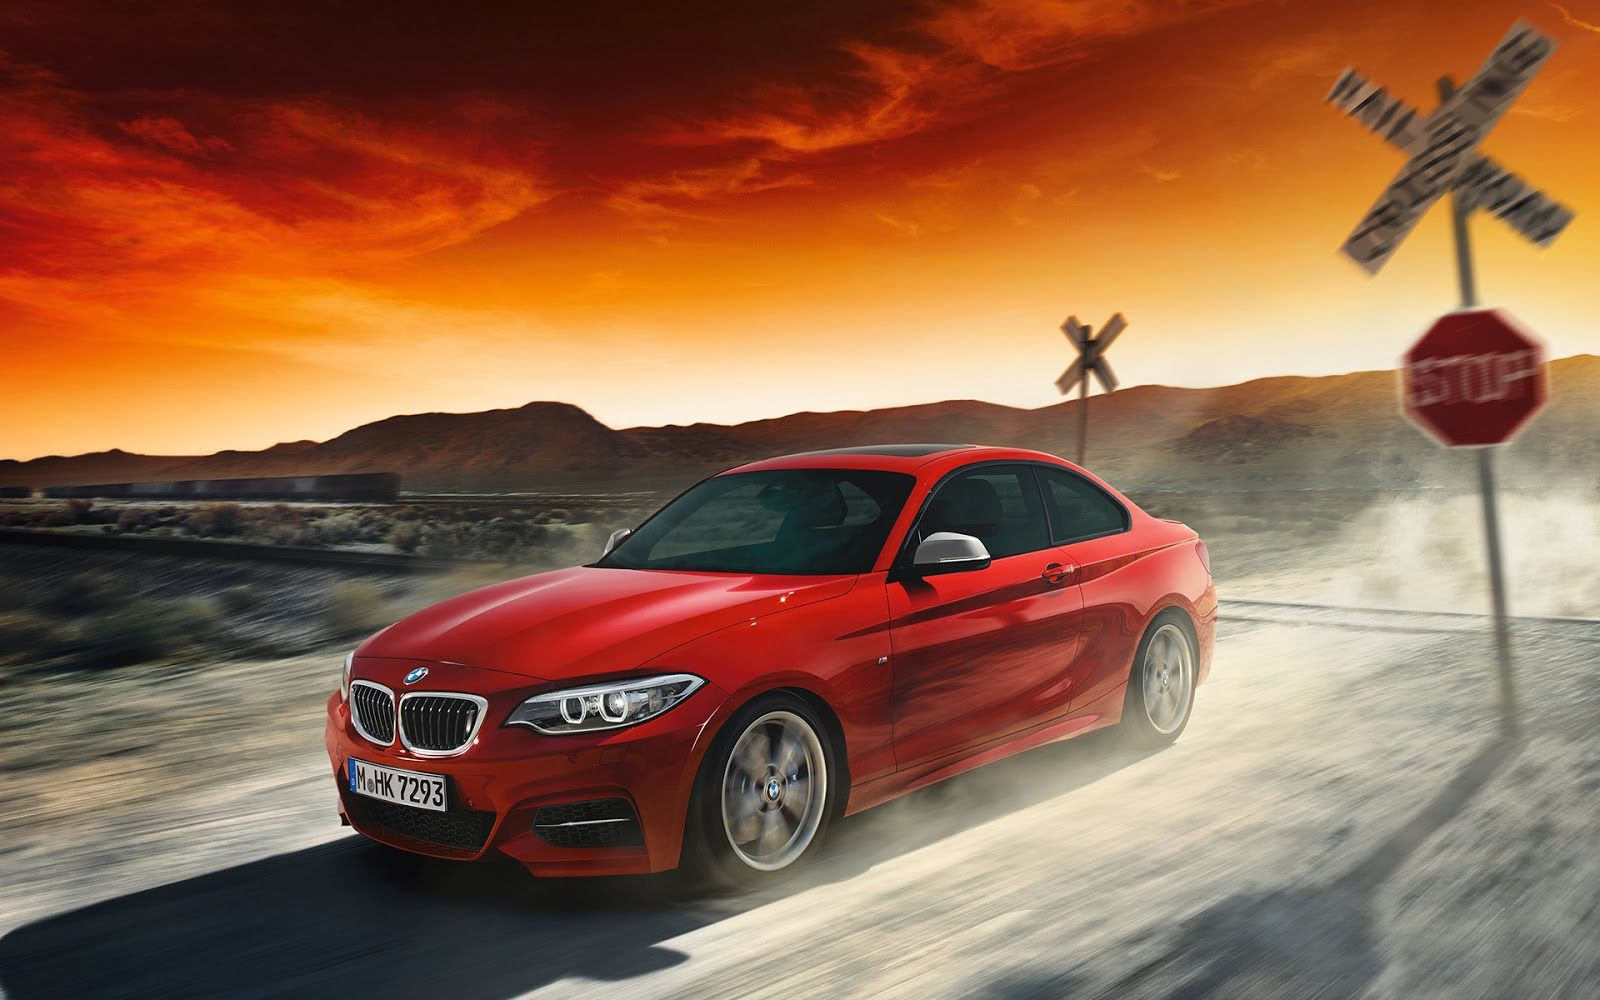 BMW 2 Series Wallpapers - Top Free BMW 2 Series Backgrounds ...